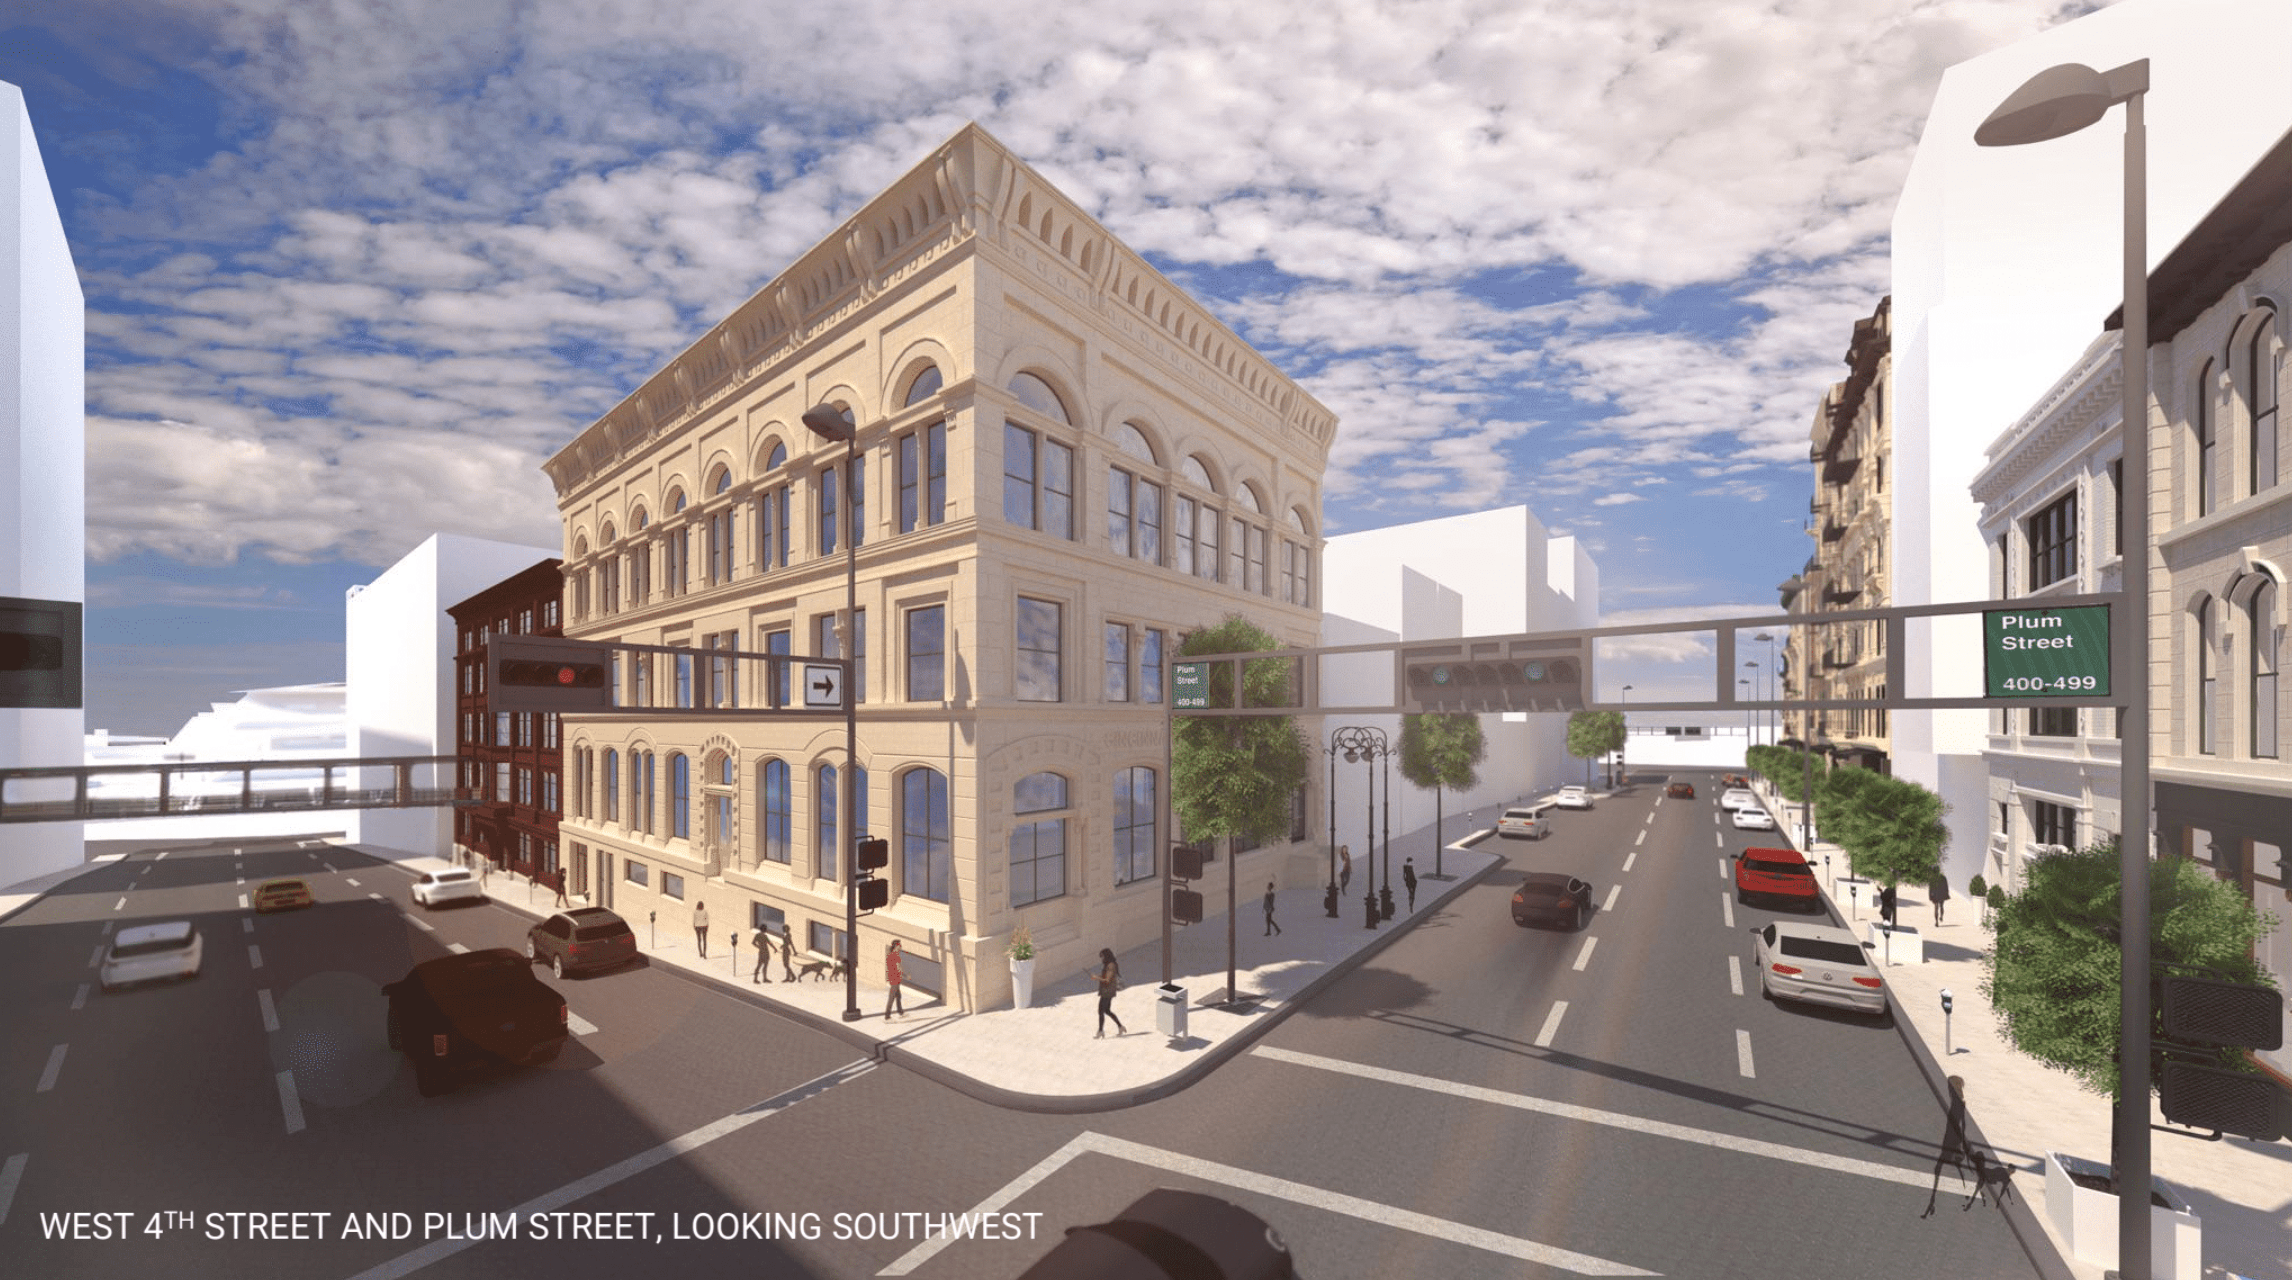 Best Urban Design Development Master Planning Cincinnati Ohio West 4th St